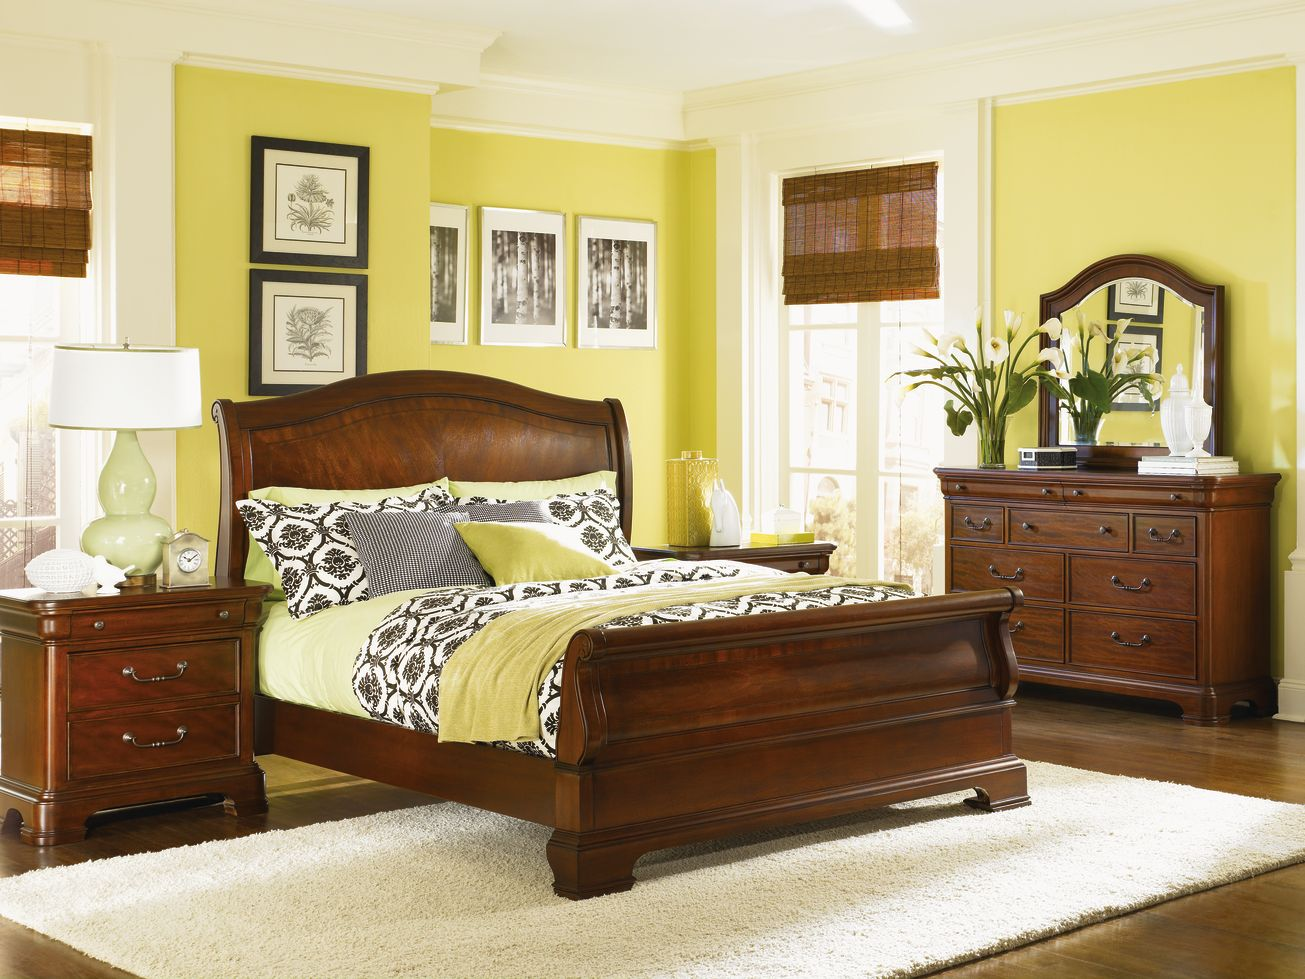 Bedroom Furniture | Dreamland Mattress & Furniture